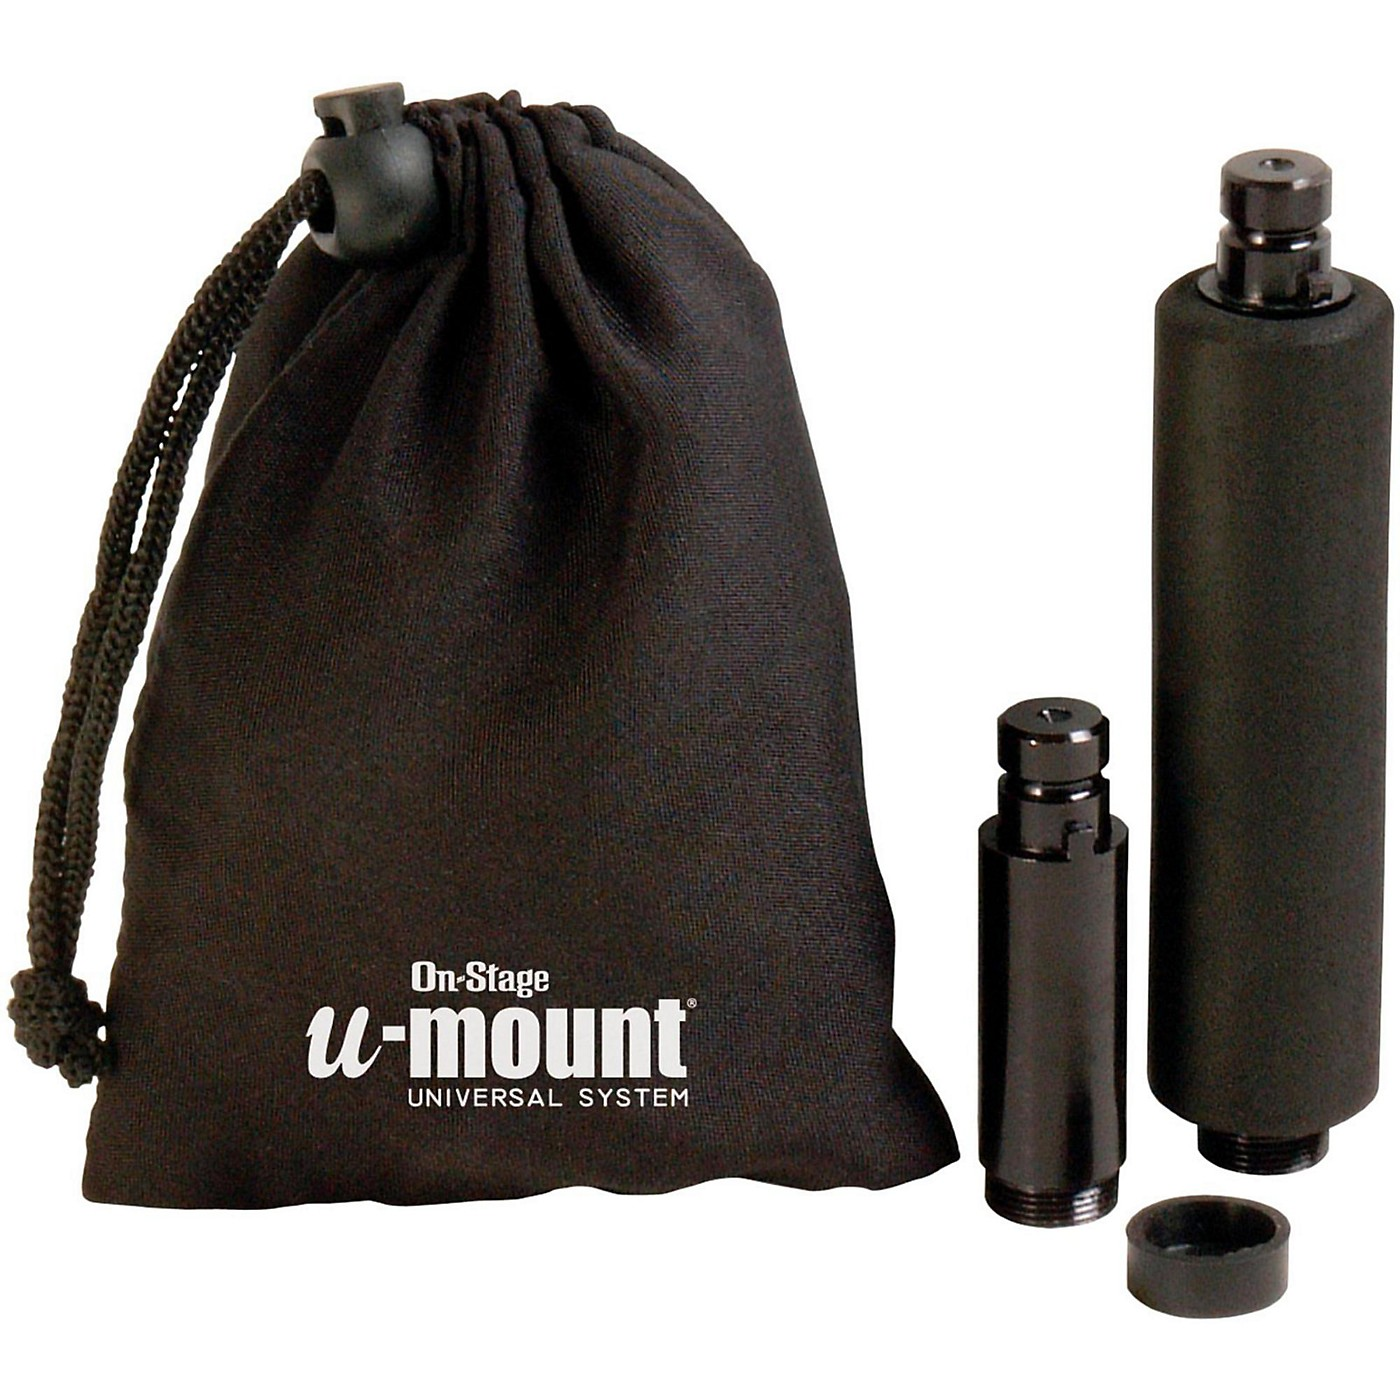 On-Stage u-mount Accessory Kit for Snap-On Models thumbnail